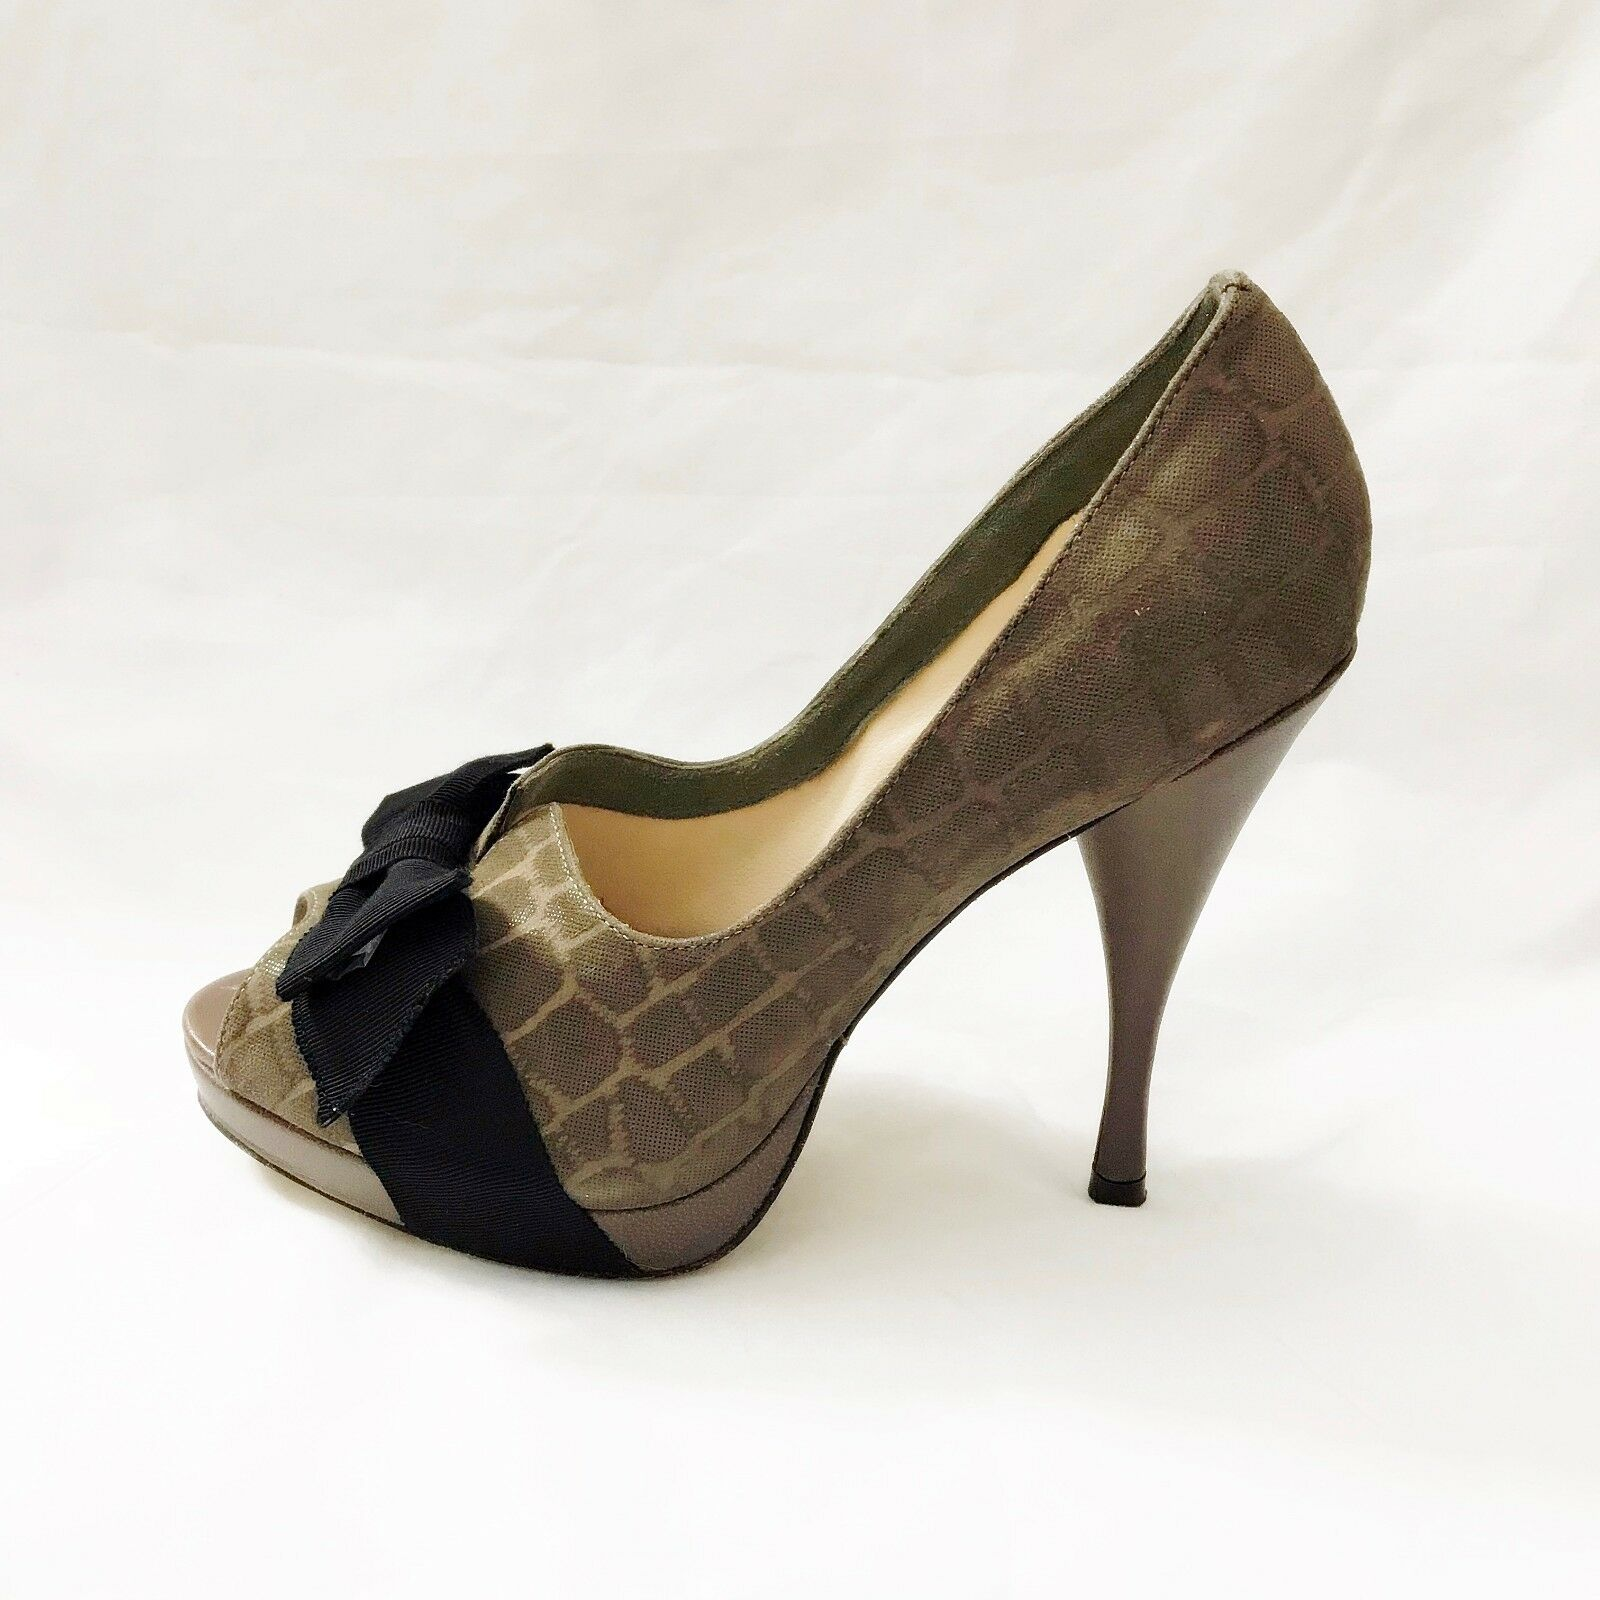 Adrienne Vittadini COLLECTION Escarpins Bout Ouvert Plateforme Apple taupe Croco En Relief 7.5